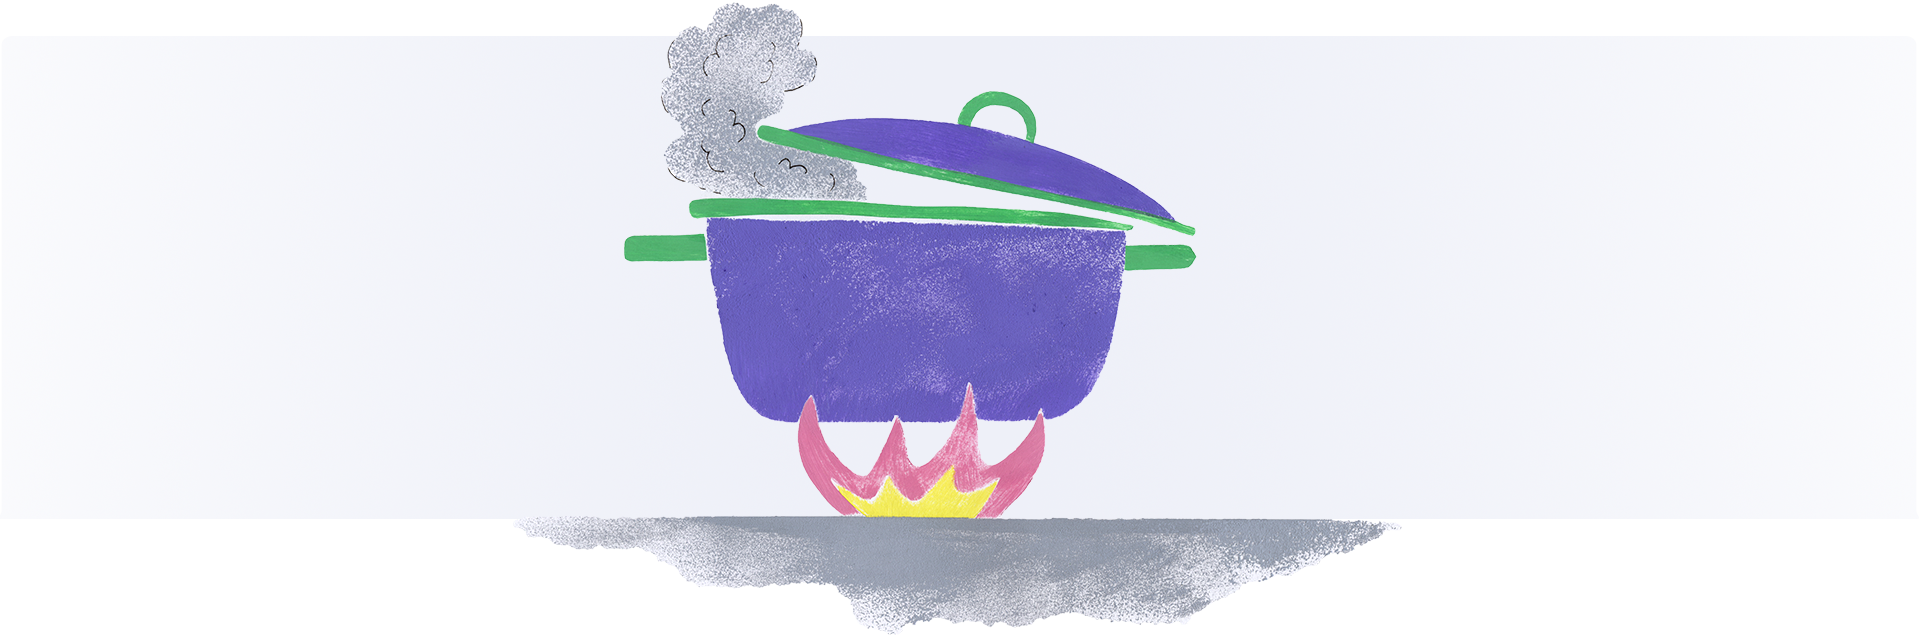 A pot cooking on an open flame.